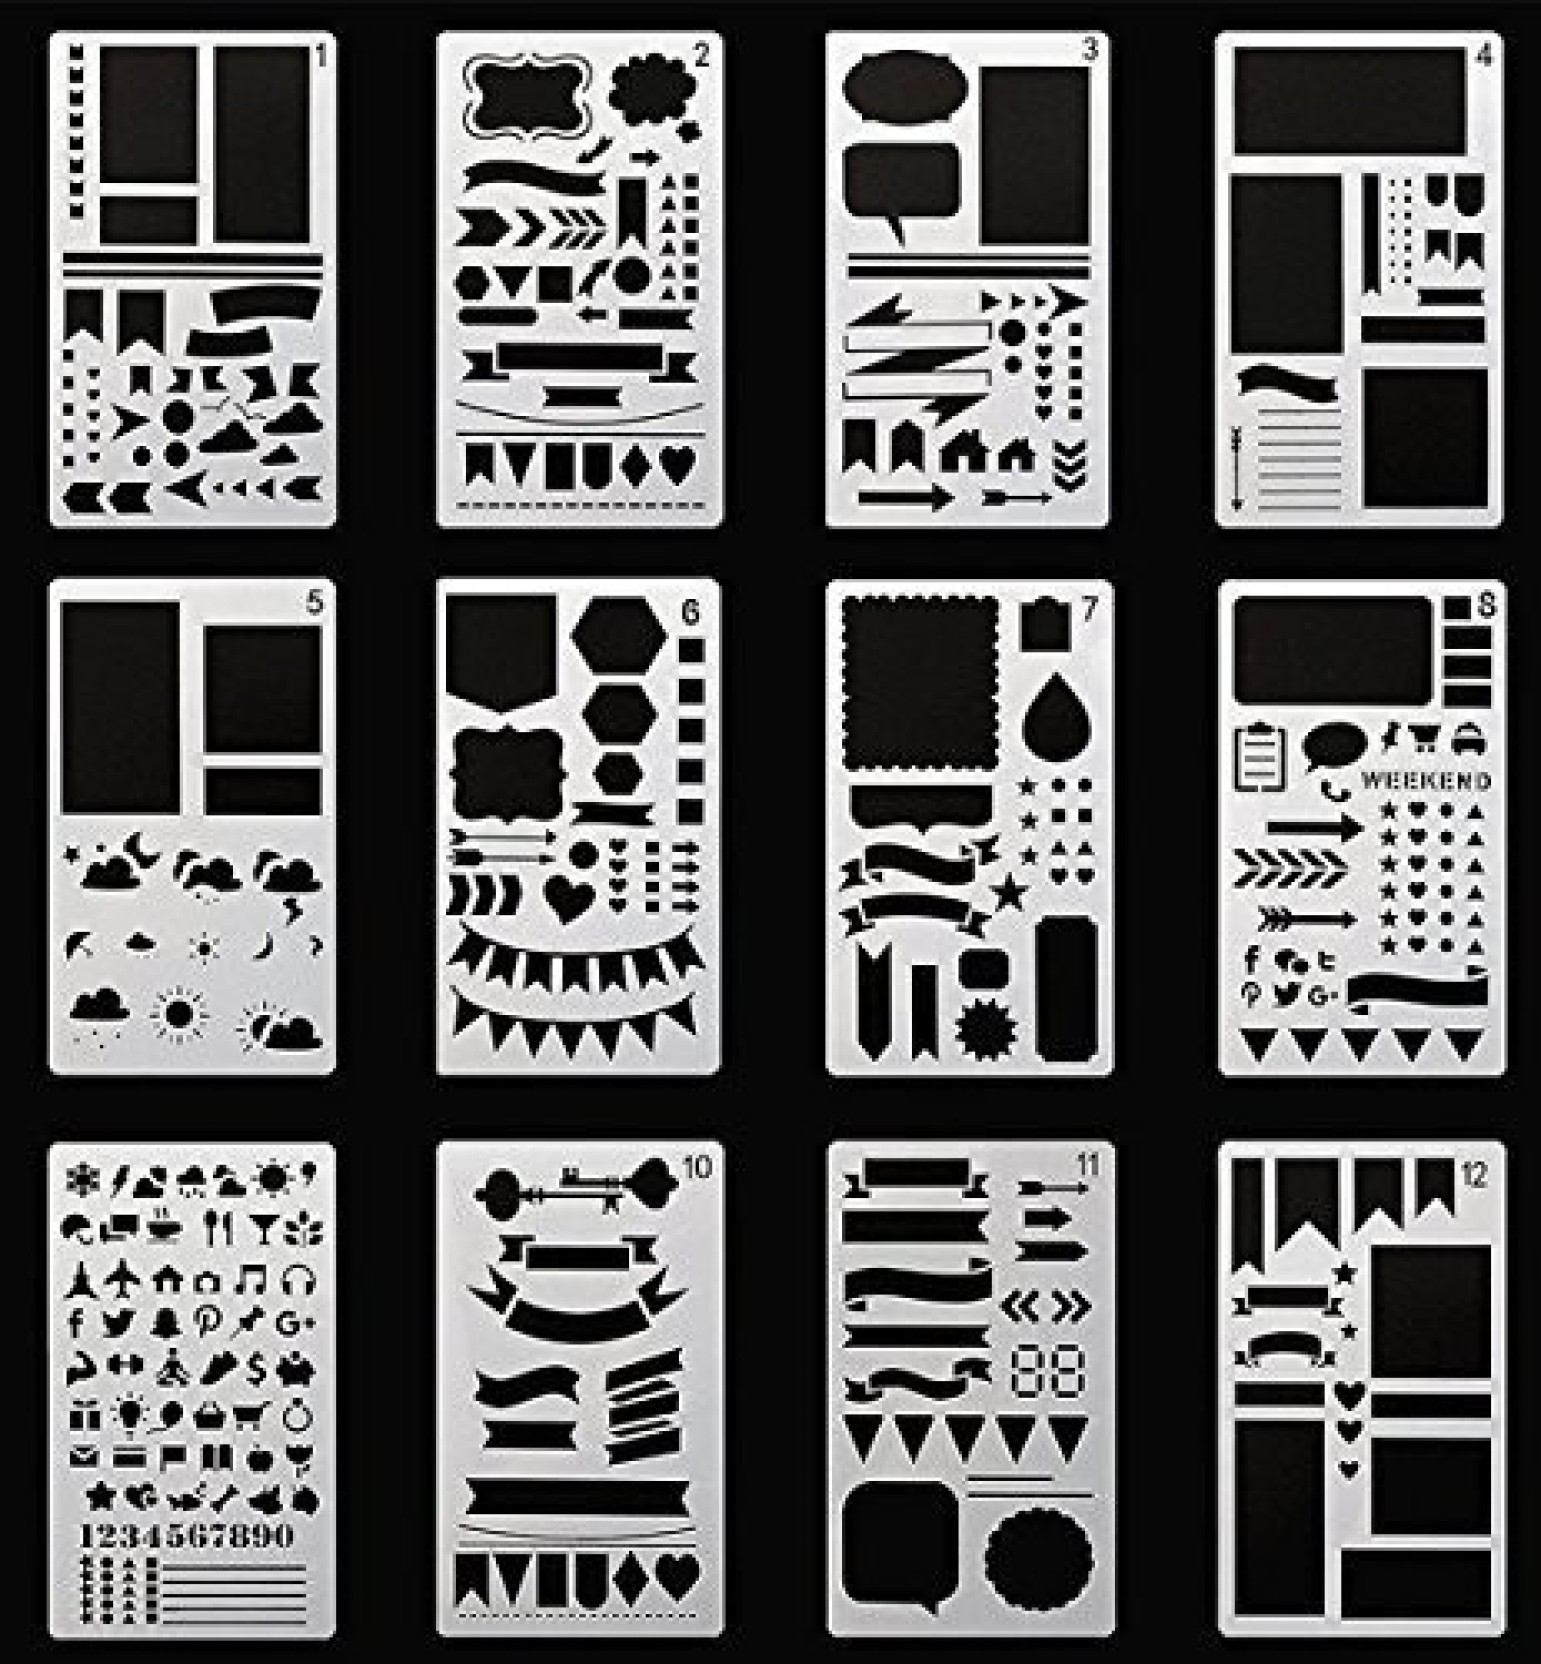 20 X Bullet Journal Stencil Plastic Planner Stencil Notebook Diary Scrapbook DIY